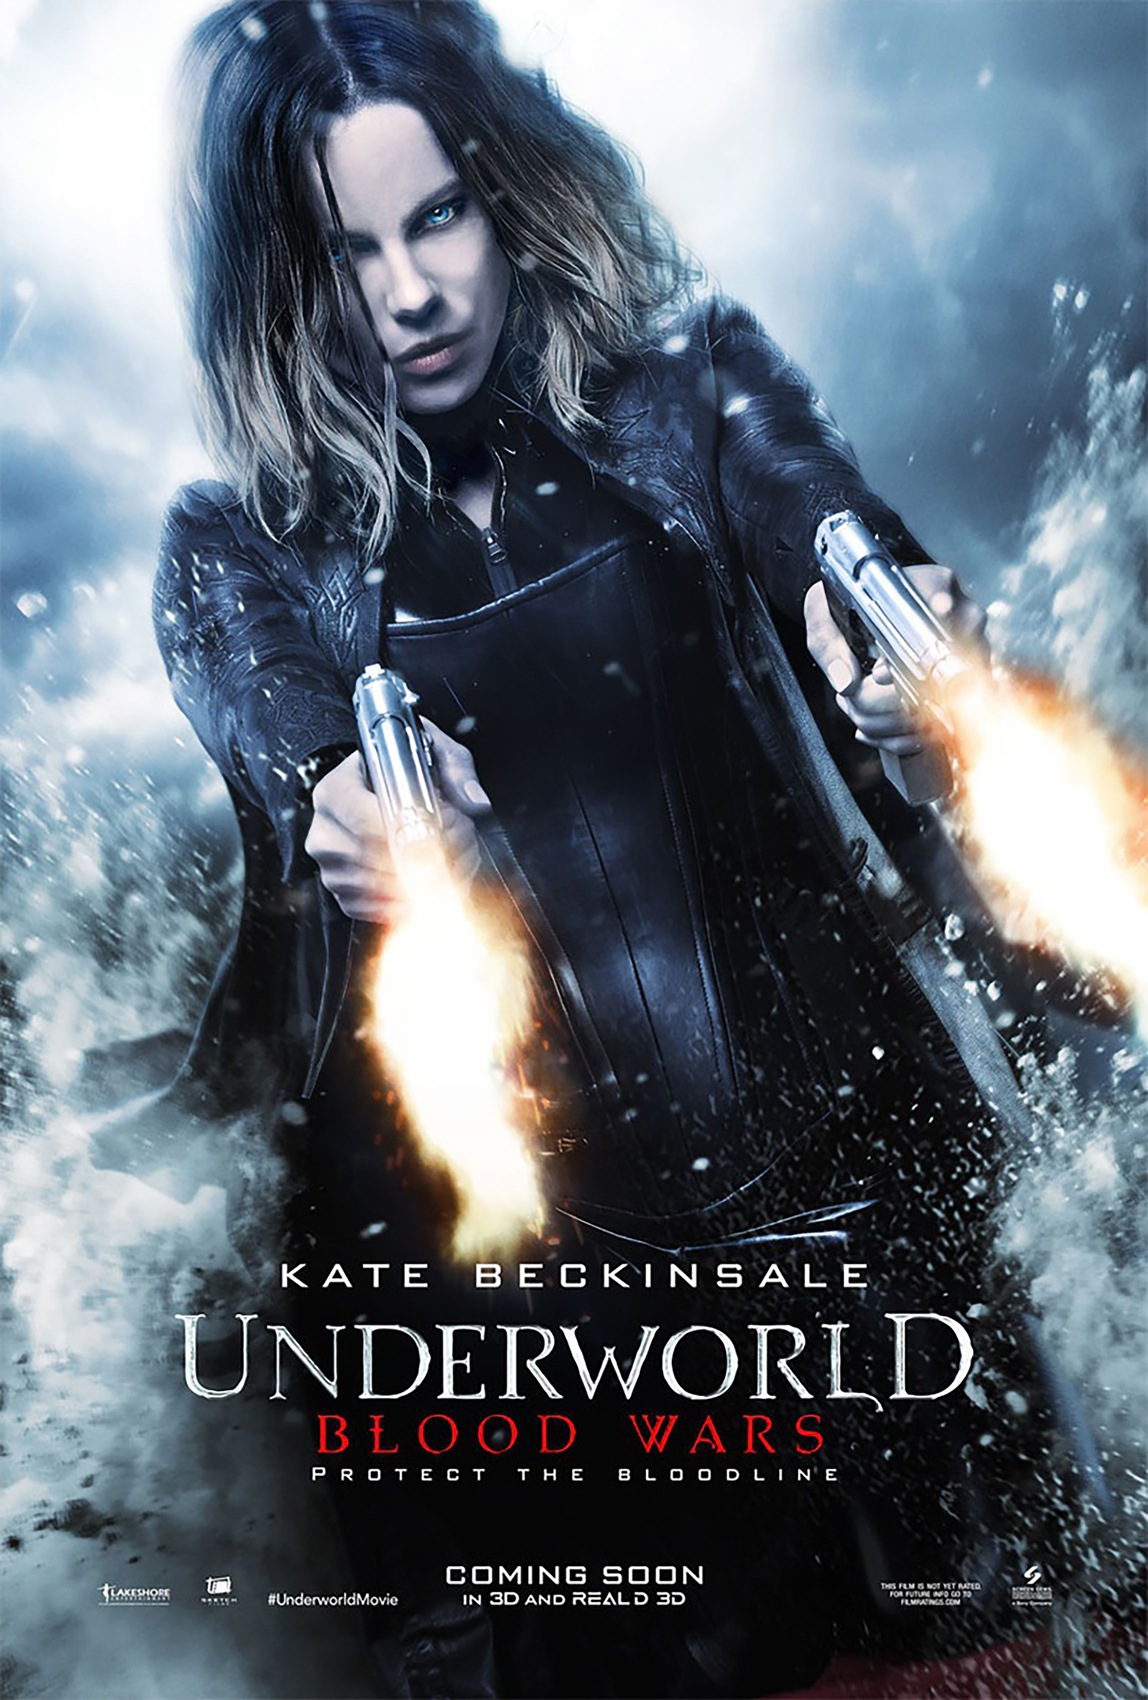 KateBeckinsale_Underworld_003